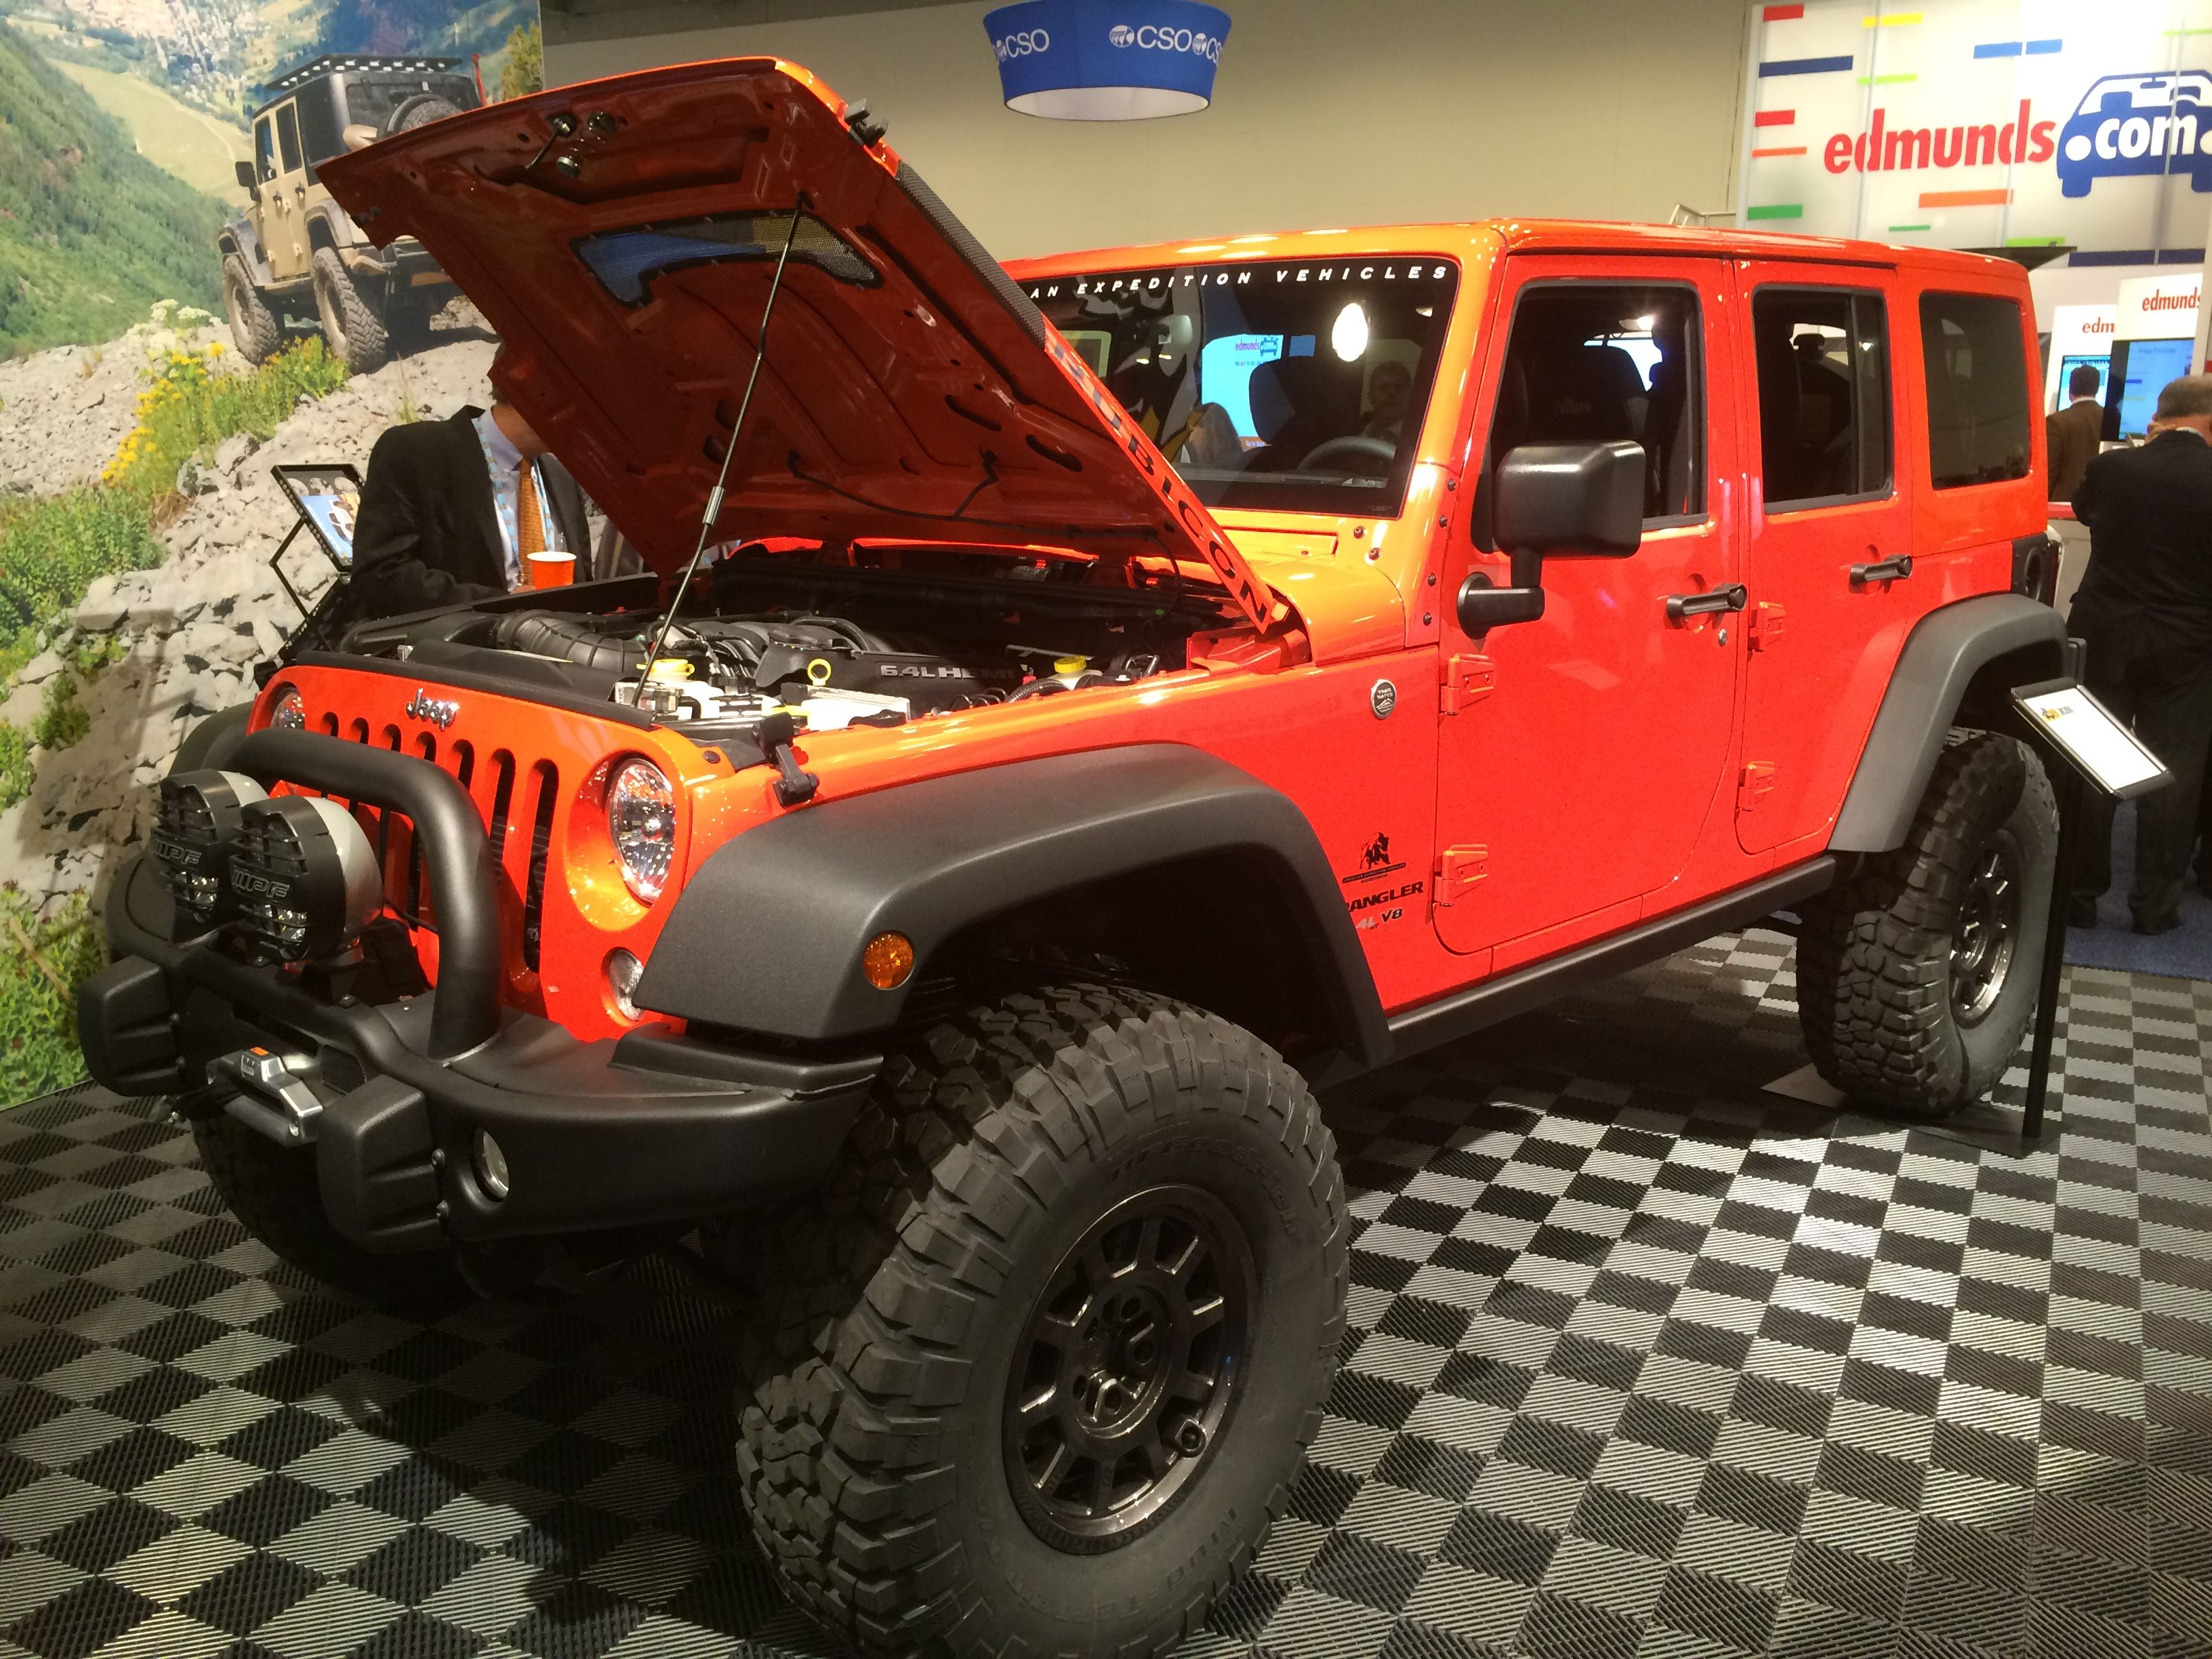 We spotted this awesome AEV JKU is at the NADA show in San Francisco